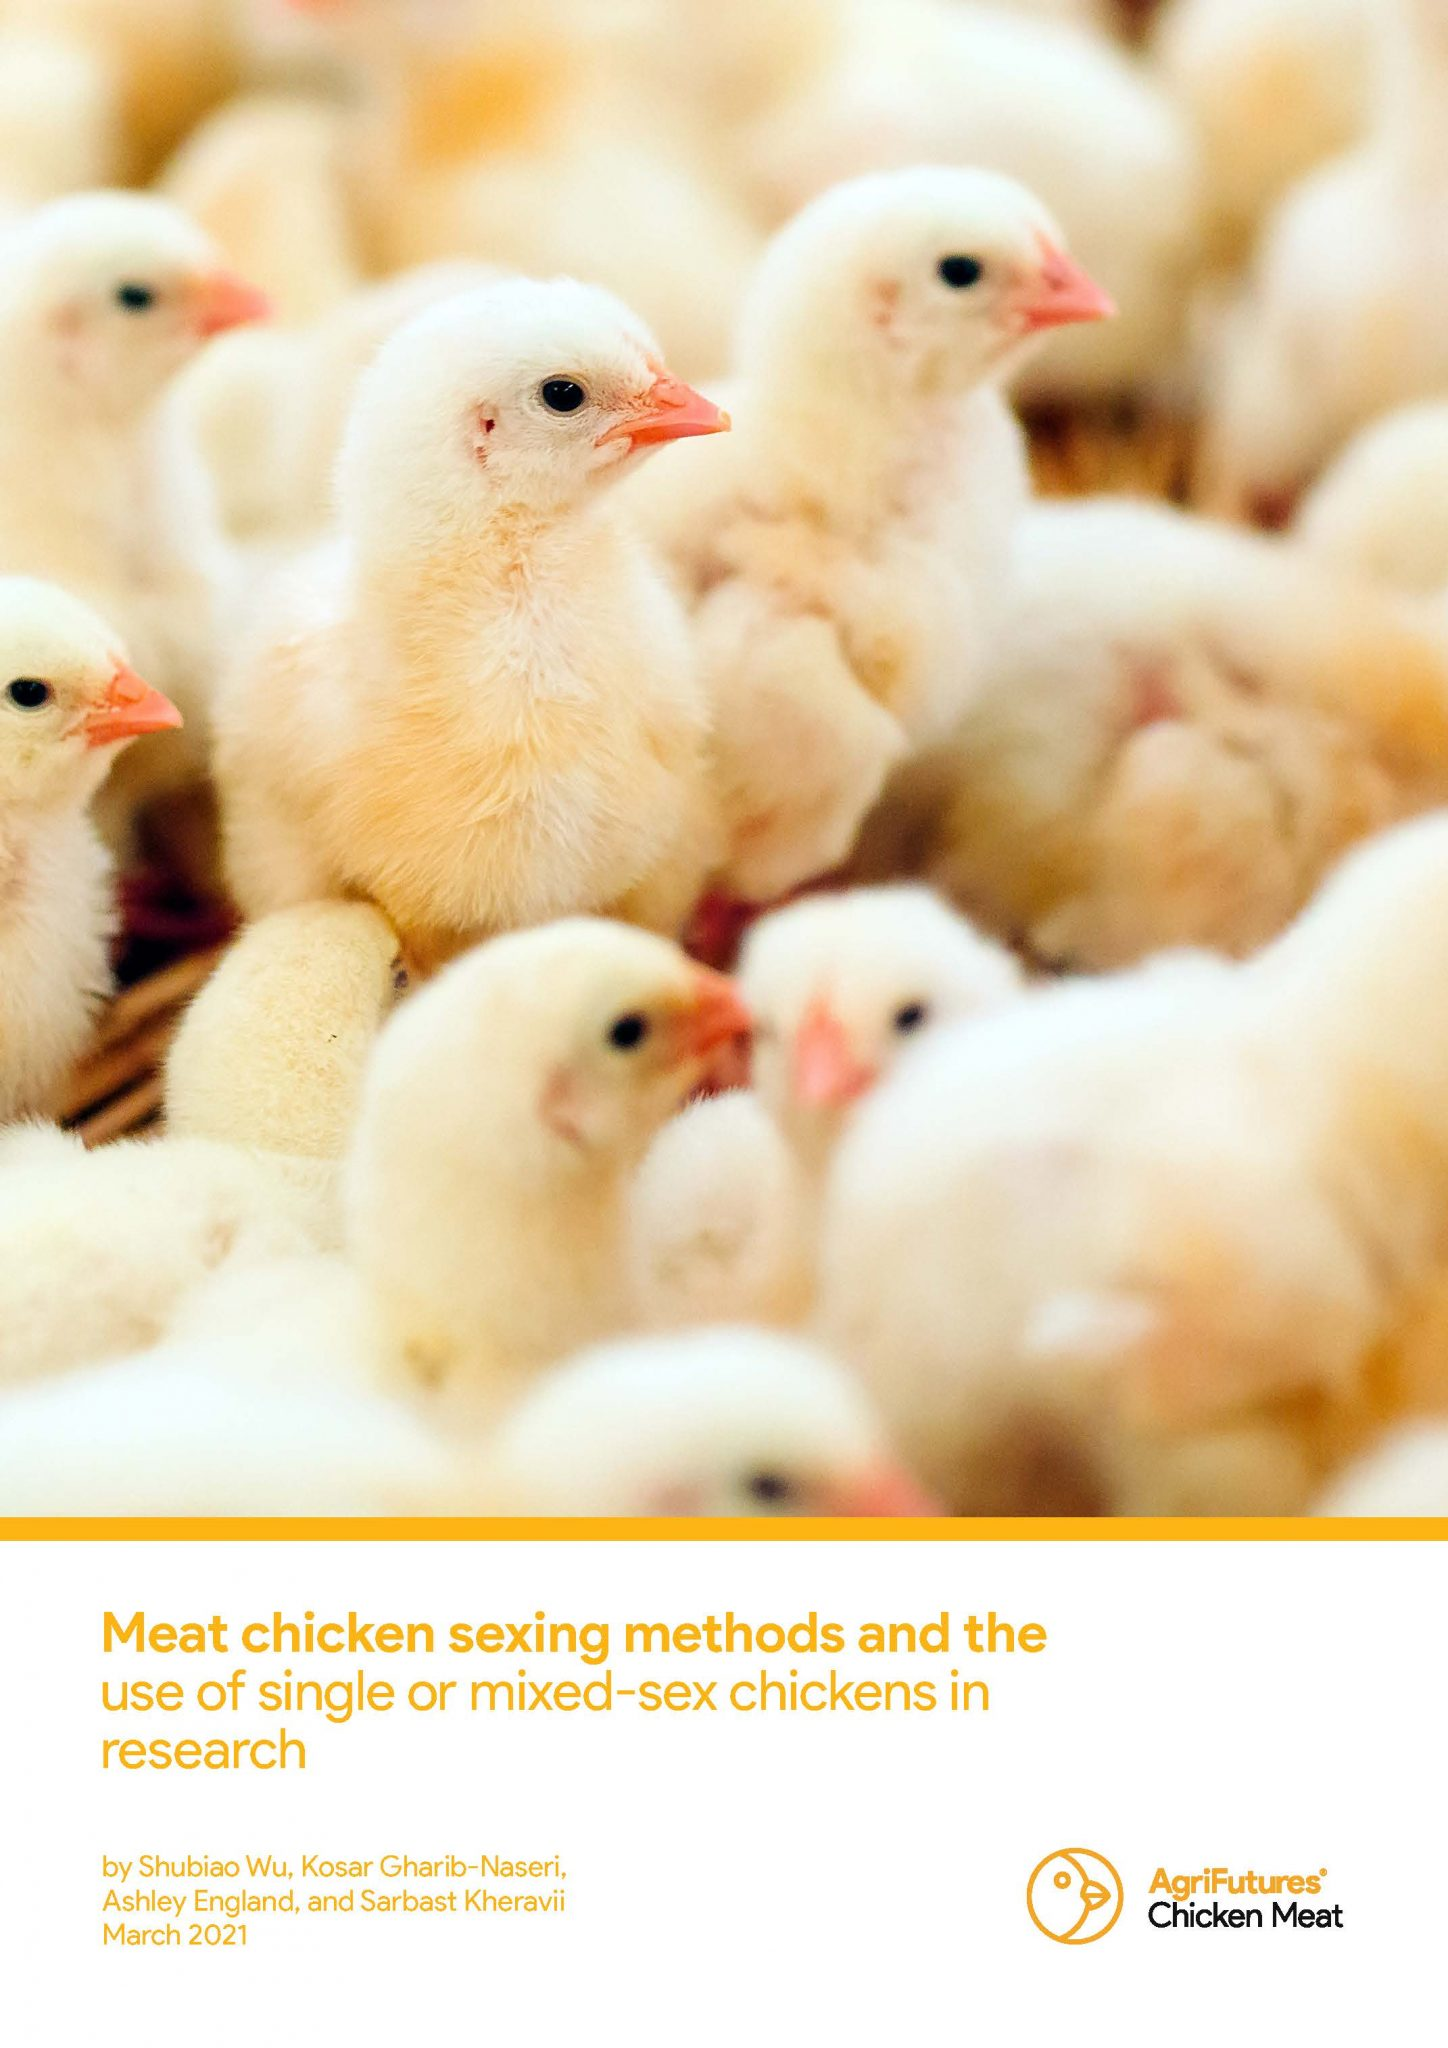 Final report: Meat chicken sexing methods and the use of single or mixed-sex chickens in research - image